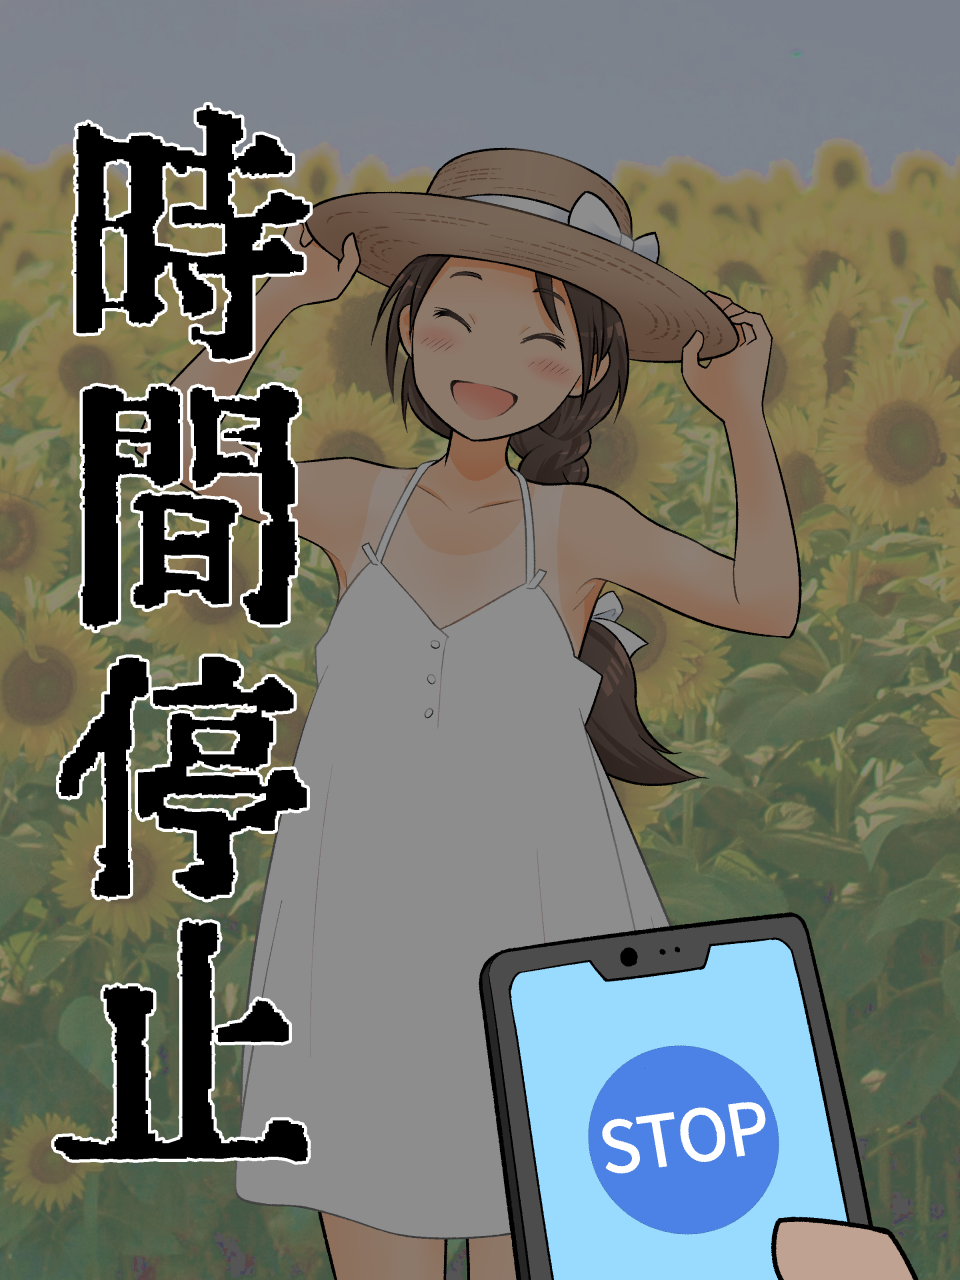 :d adjusting_clothes adjusting_headwear afunai armpits bow braid brown_hair censored closed cowboy_shot dress field flower flower_field hair_bow hat hat_bow head_tilt highres long_hair open_mouth pov pov_hands see-through_silhouette see_through_shanghai shade silhouette single_braid smile standing straw_hat sun_hat sundress sunflower tan tanlines time_stop white_bow white_dress